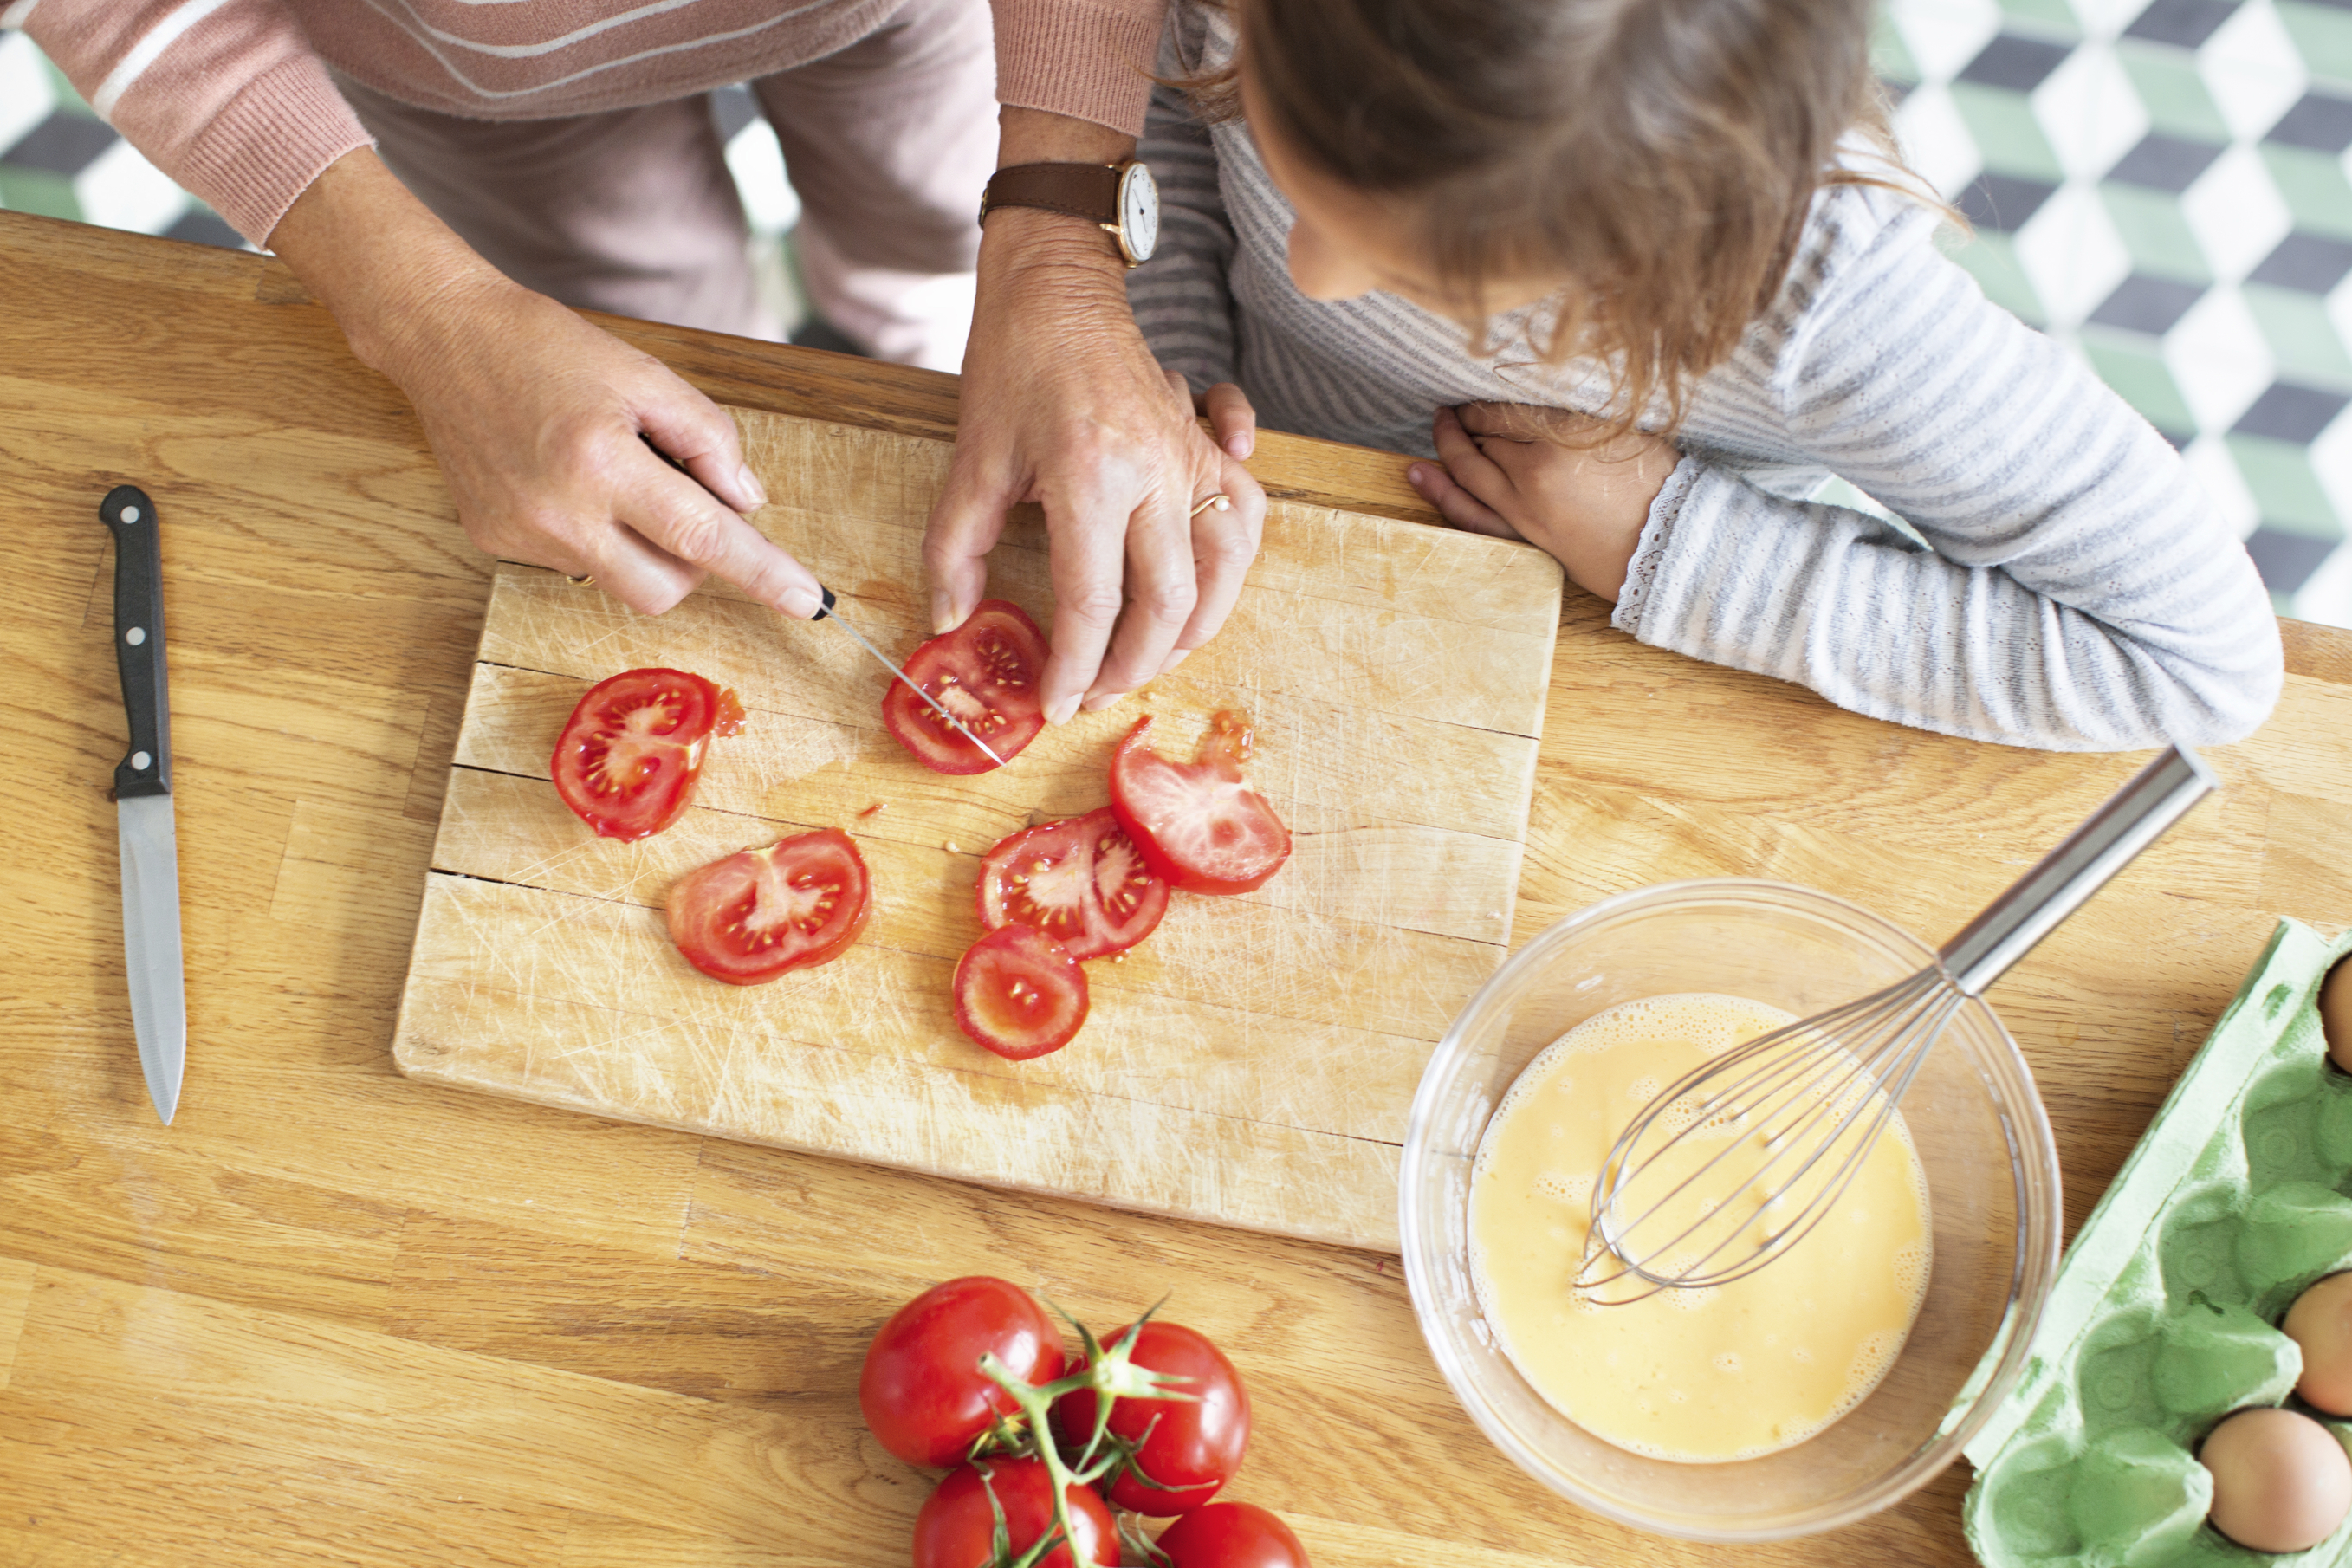 Woman cutting tomatoes while a young child watches.